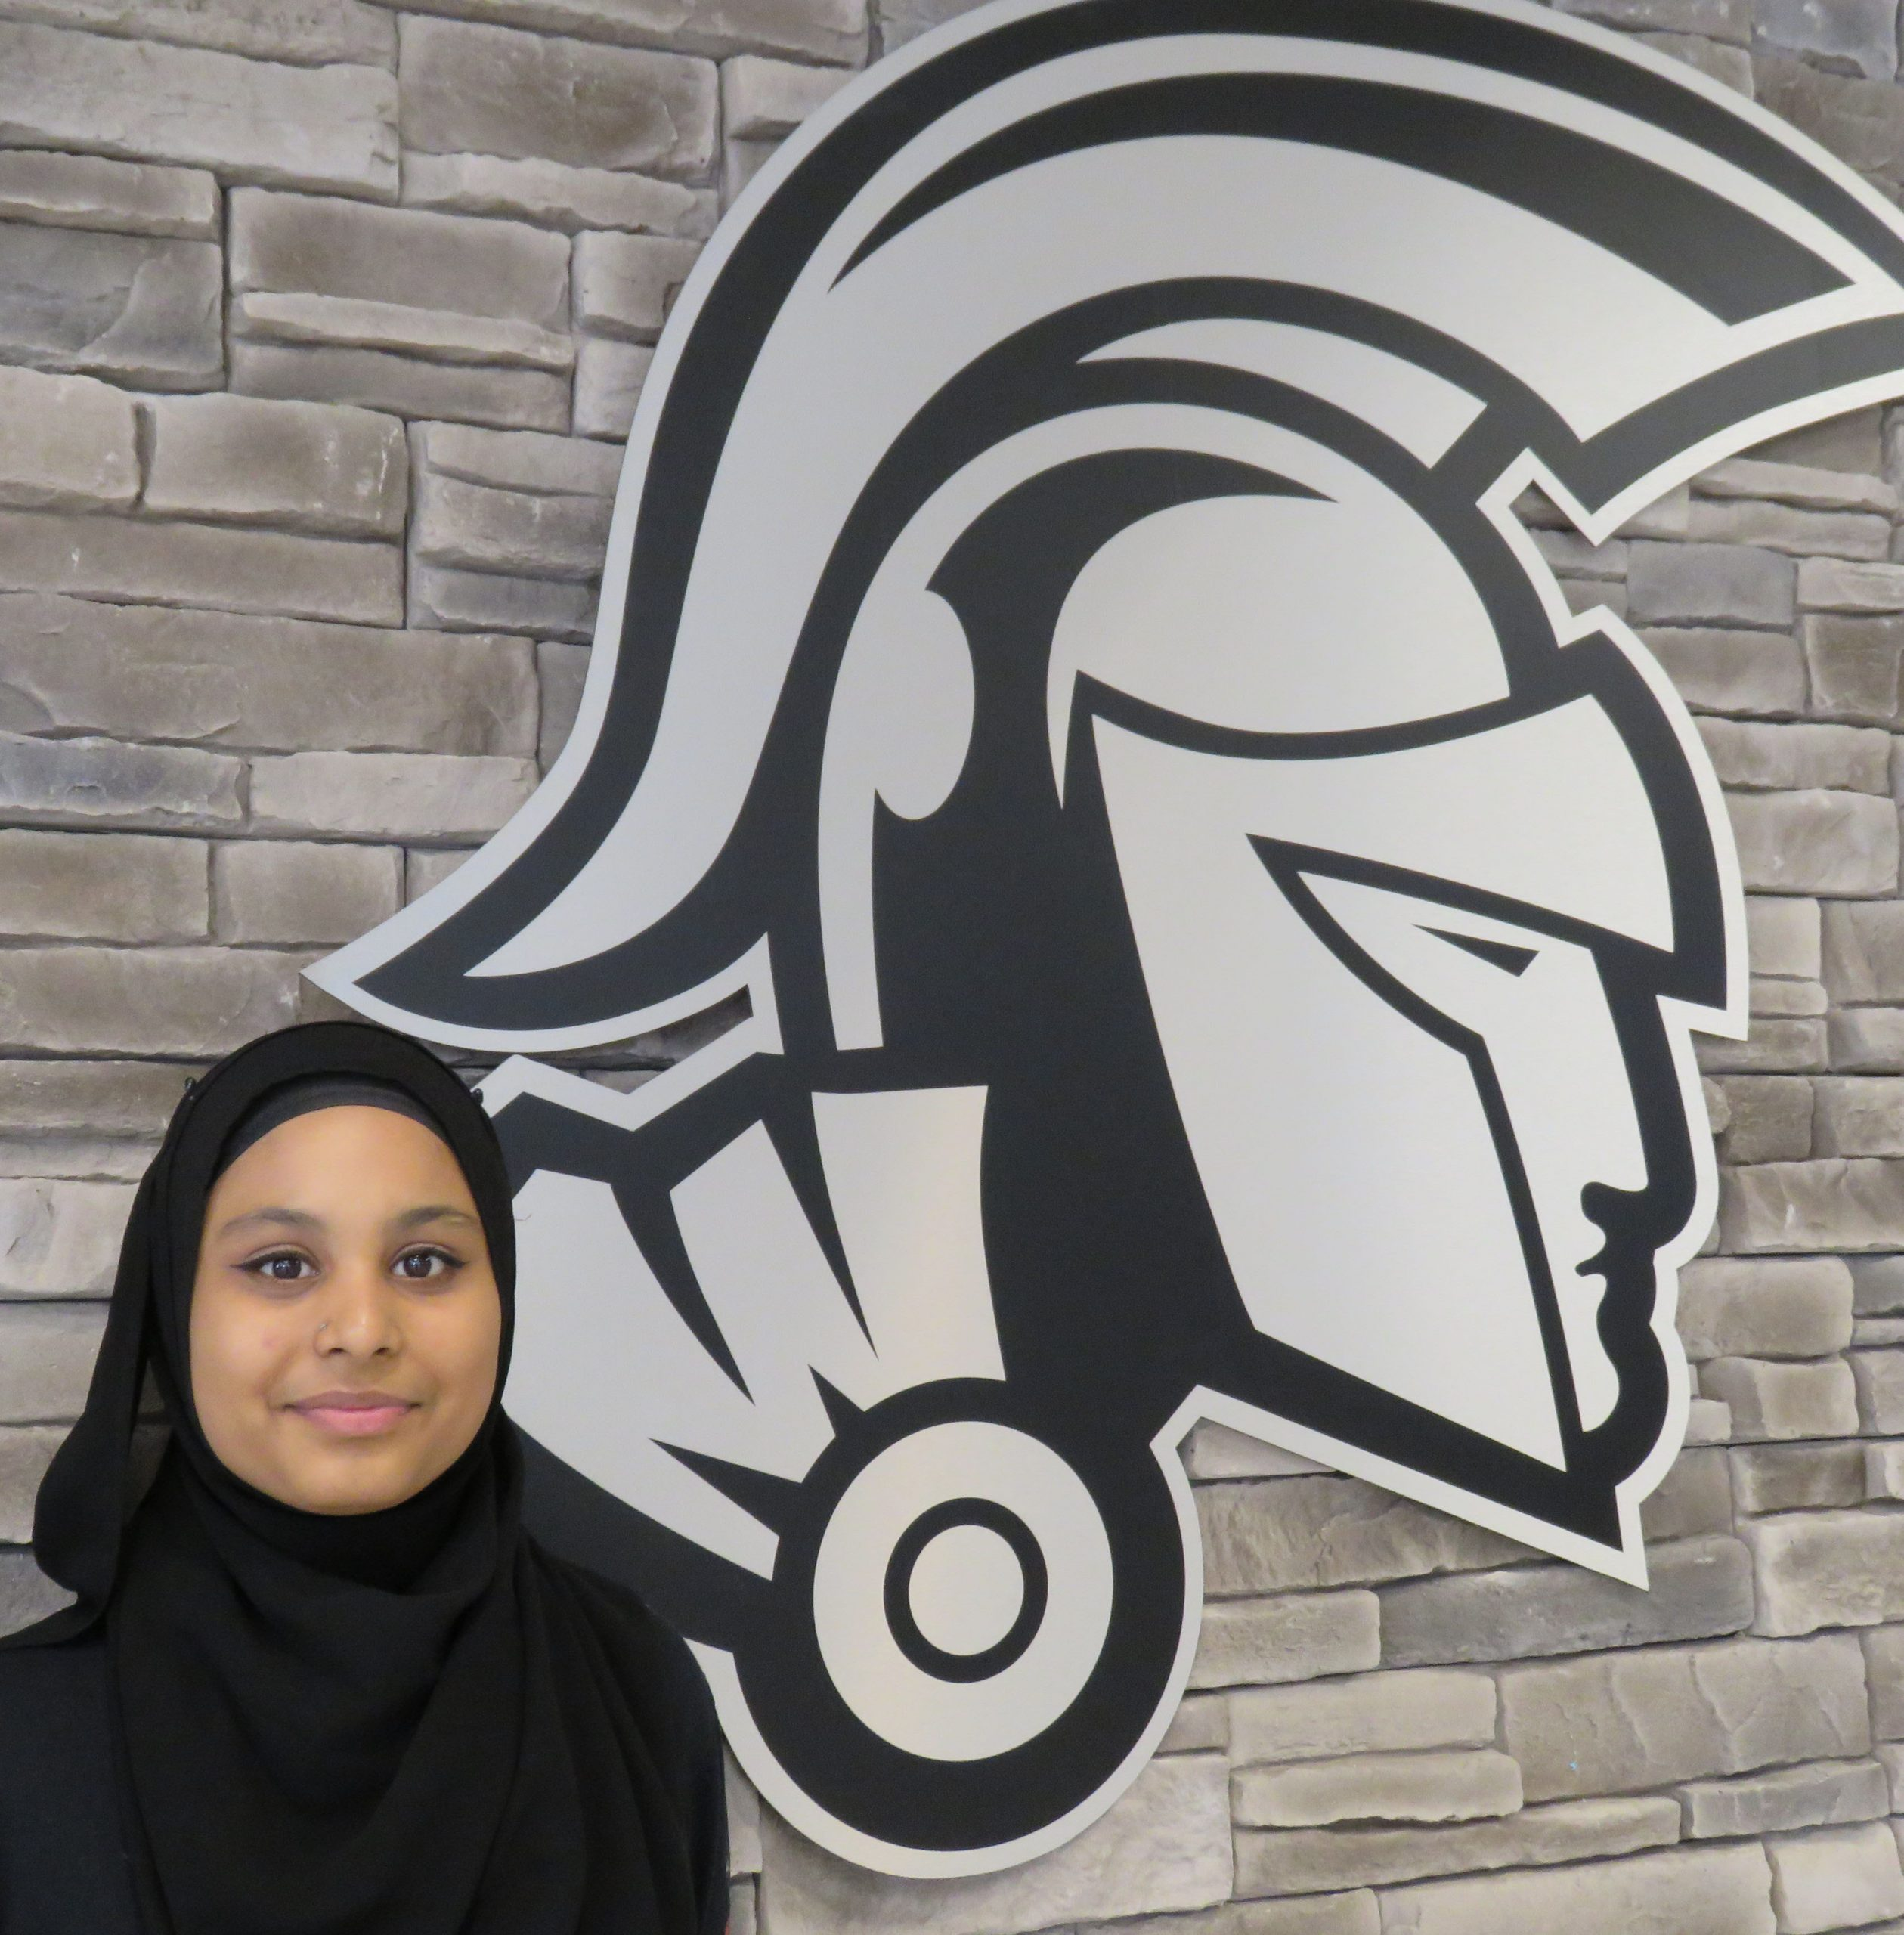 Centre Hastings student heading to Queen's Park